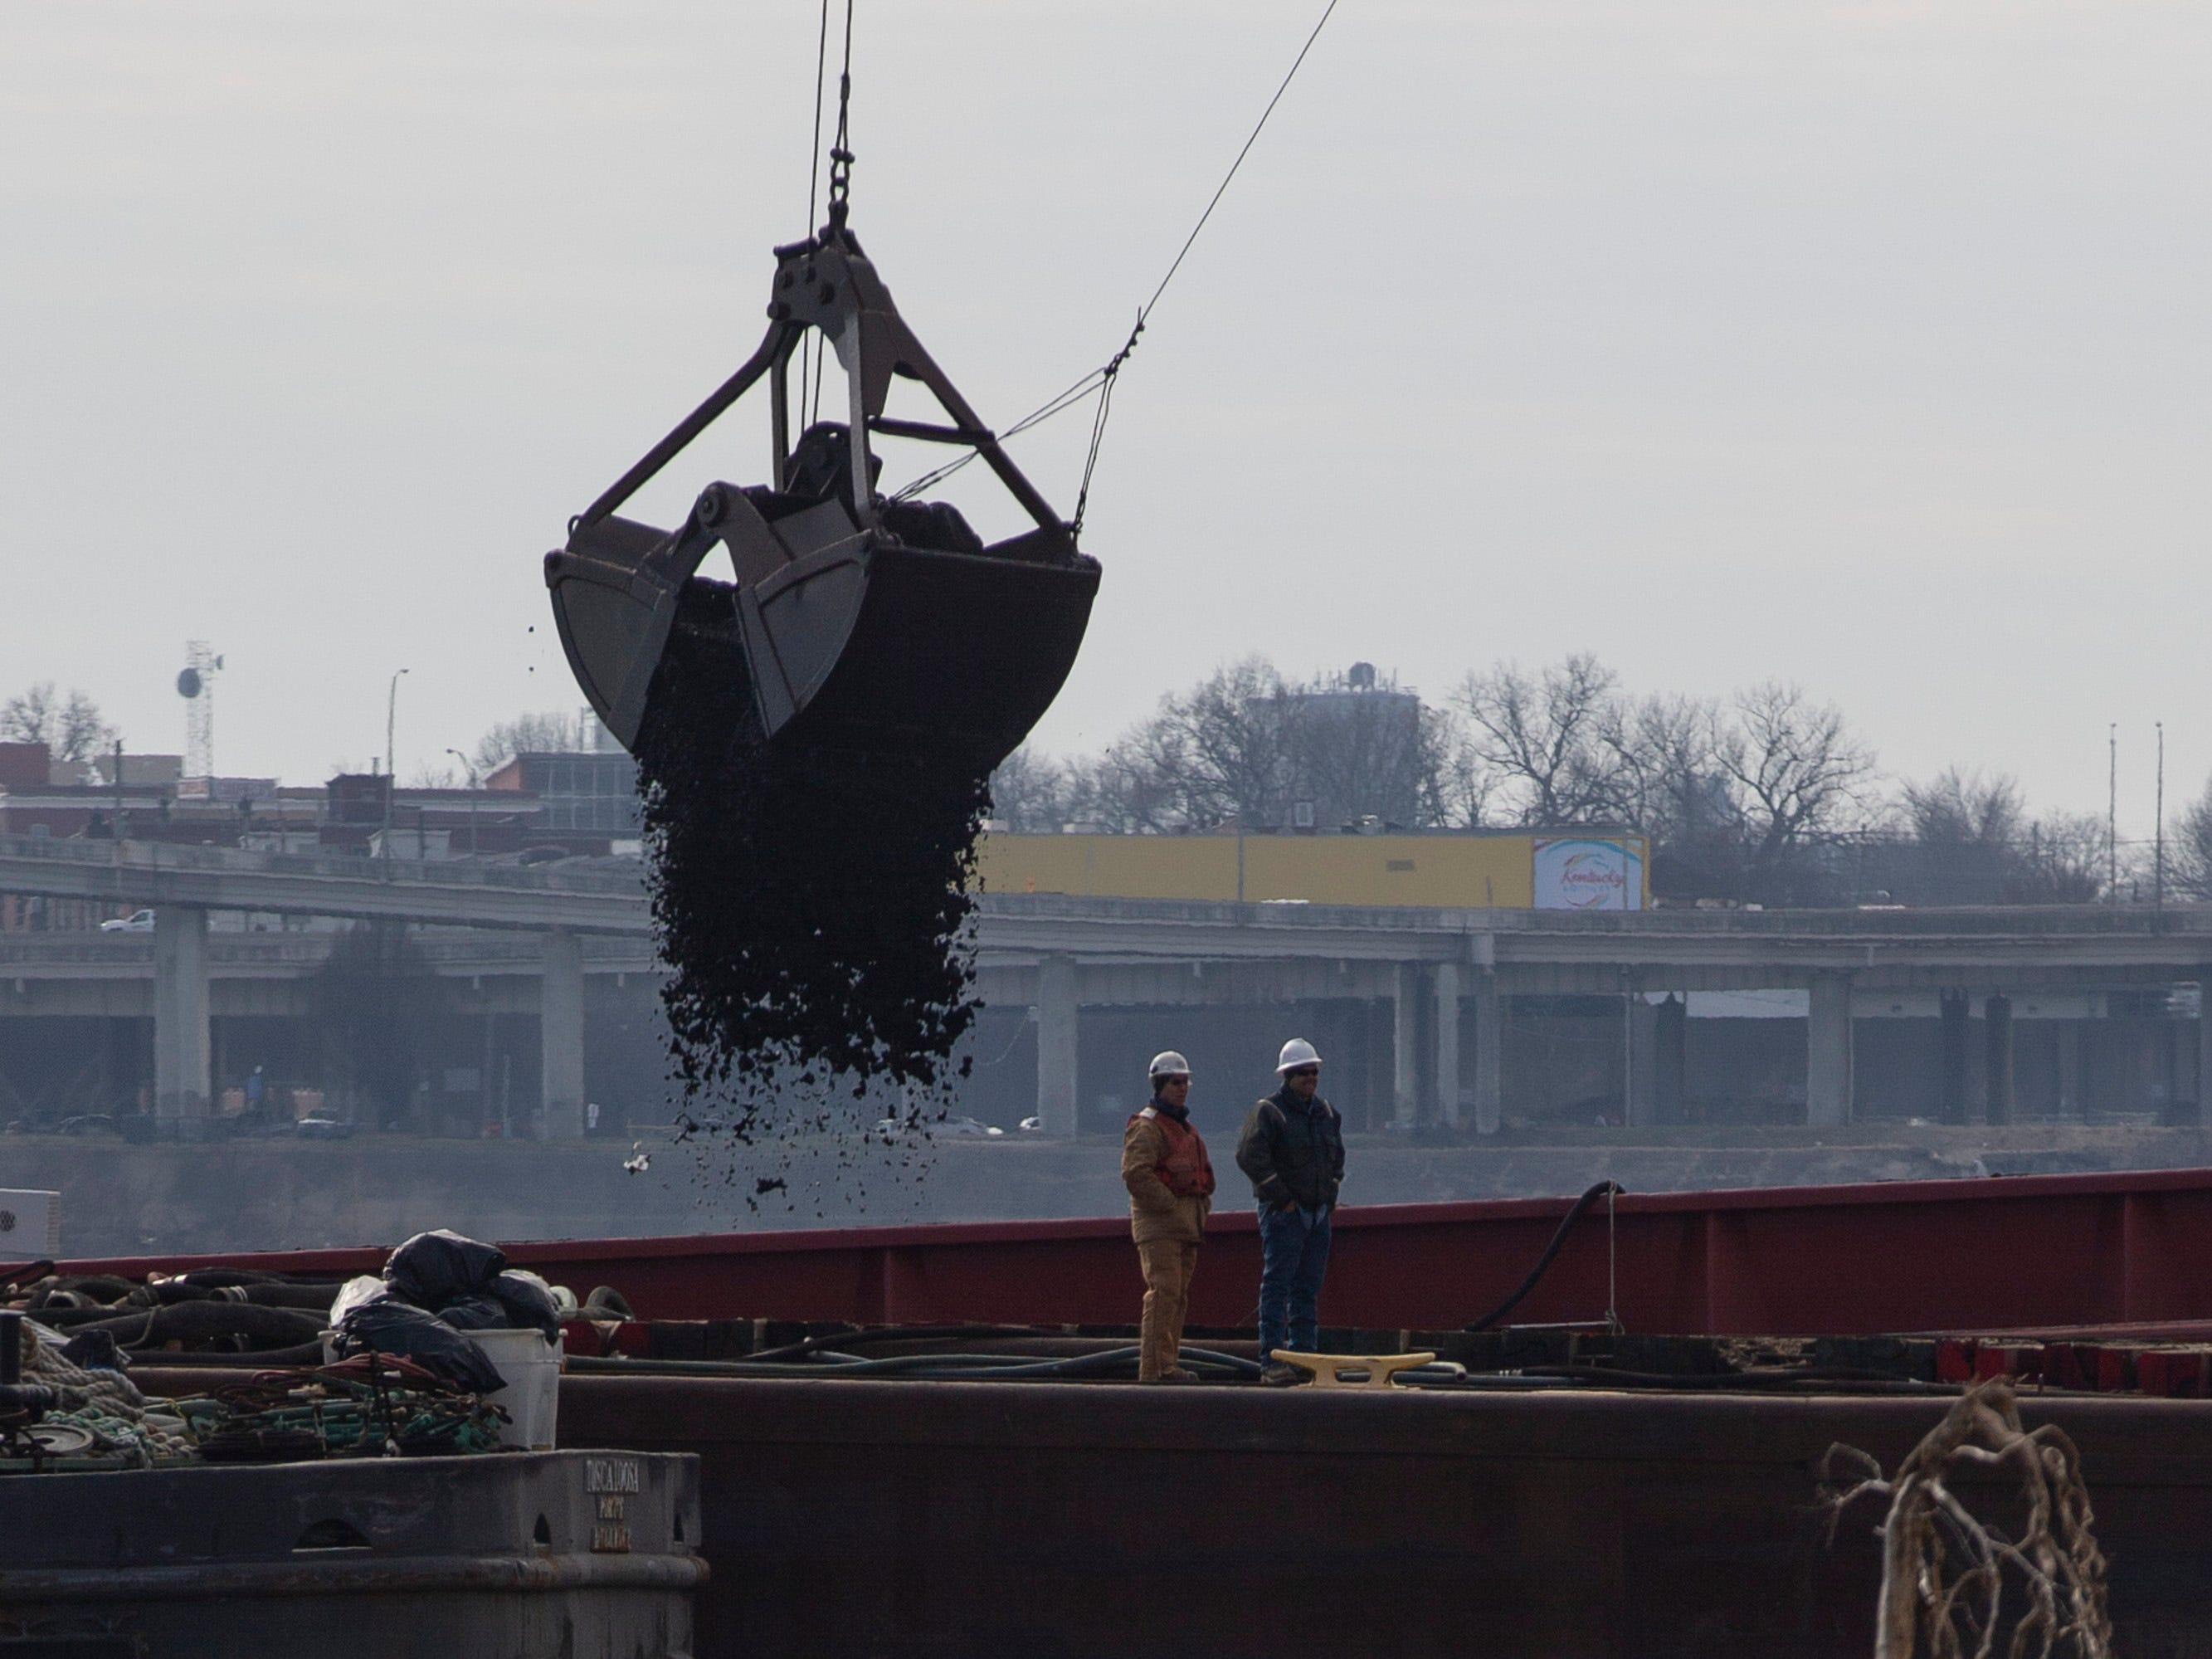 Coal is recovered Friday from the first barge that will likely soon be attempted to be recovered from those stuck against the dam in Louisville. Jan. 11, 2019